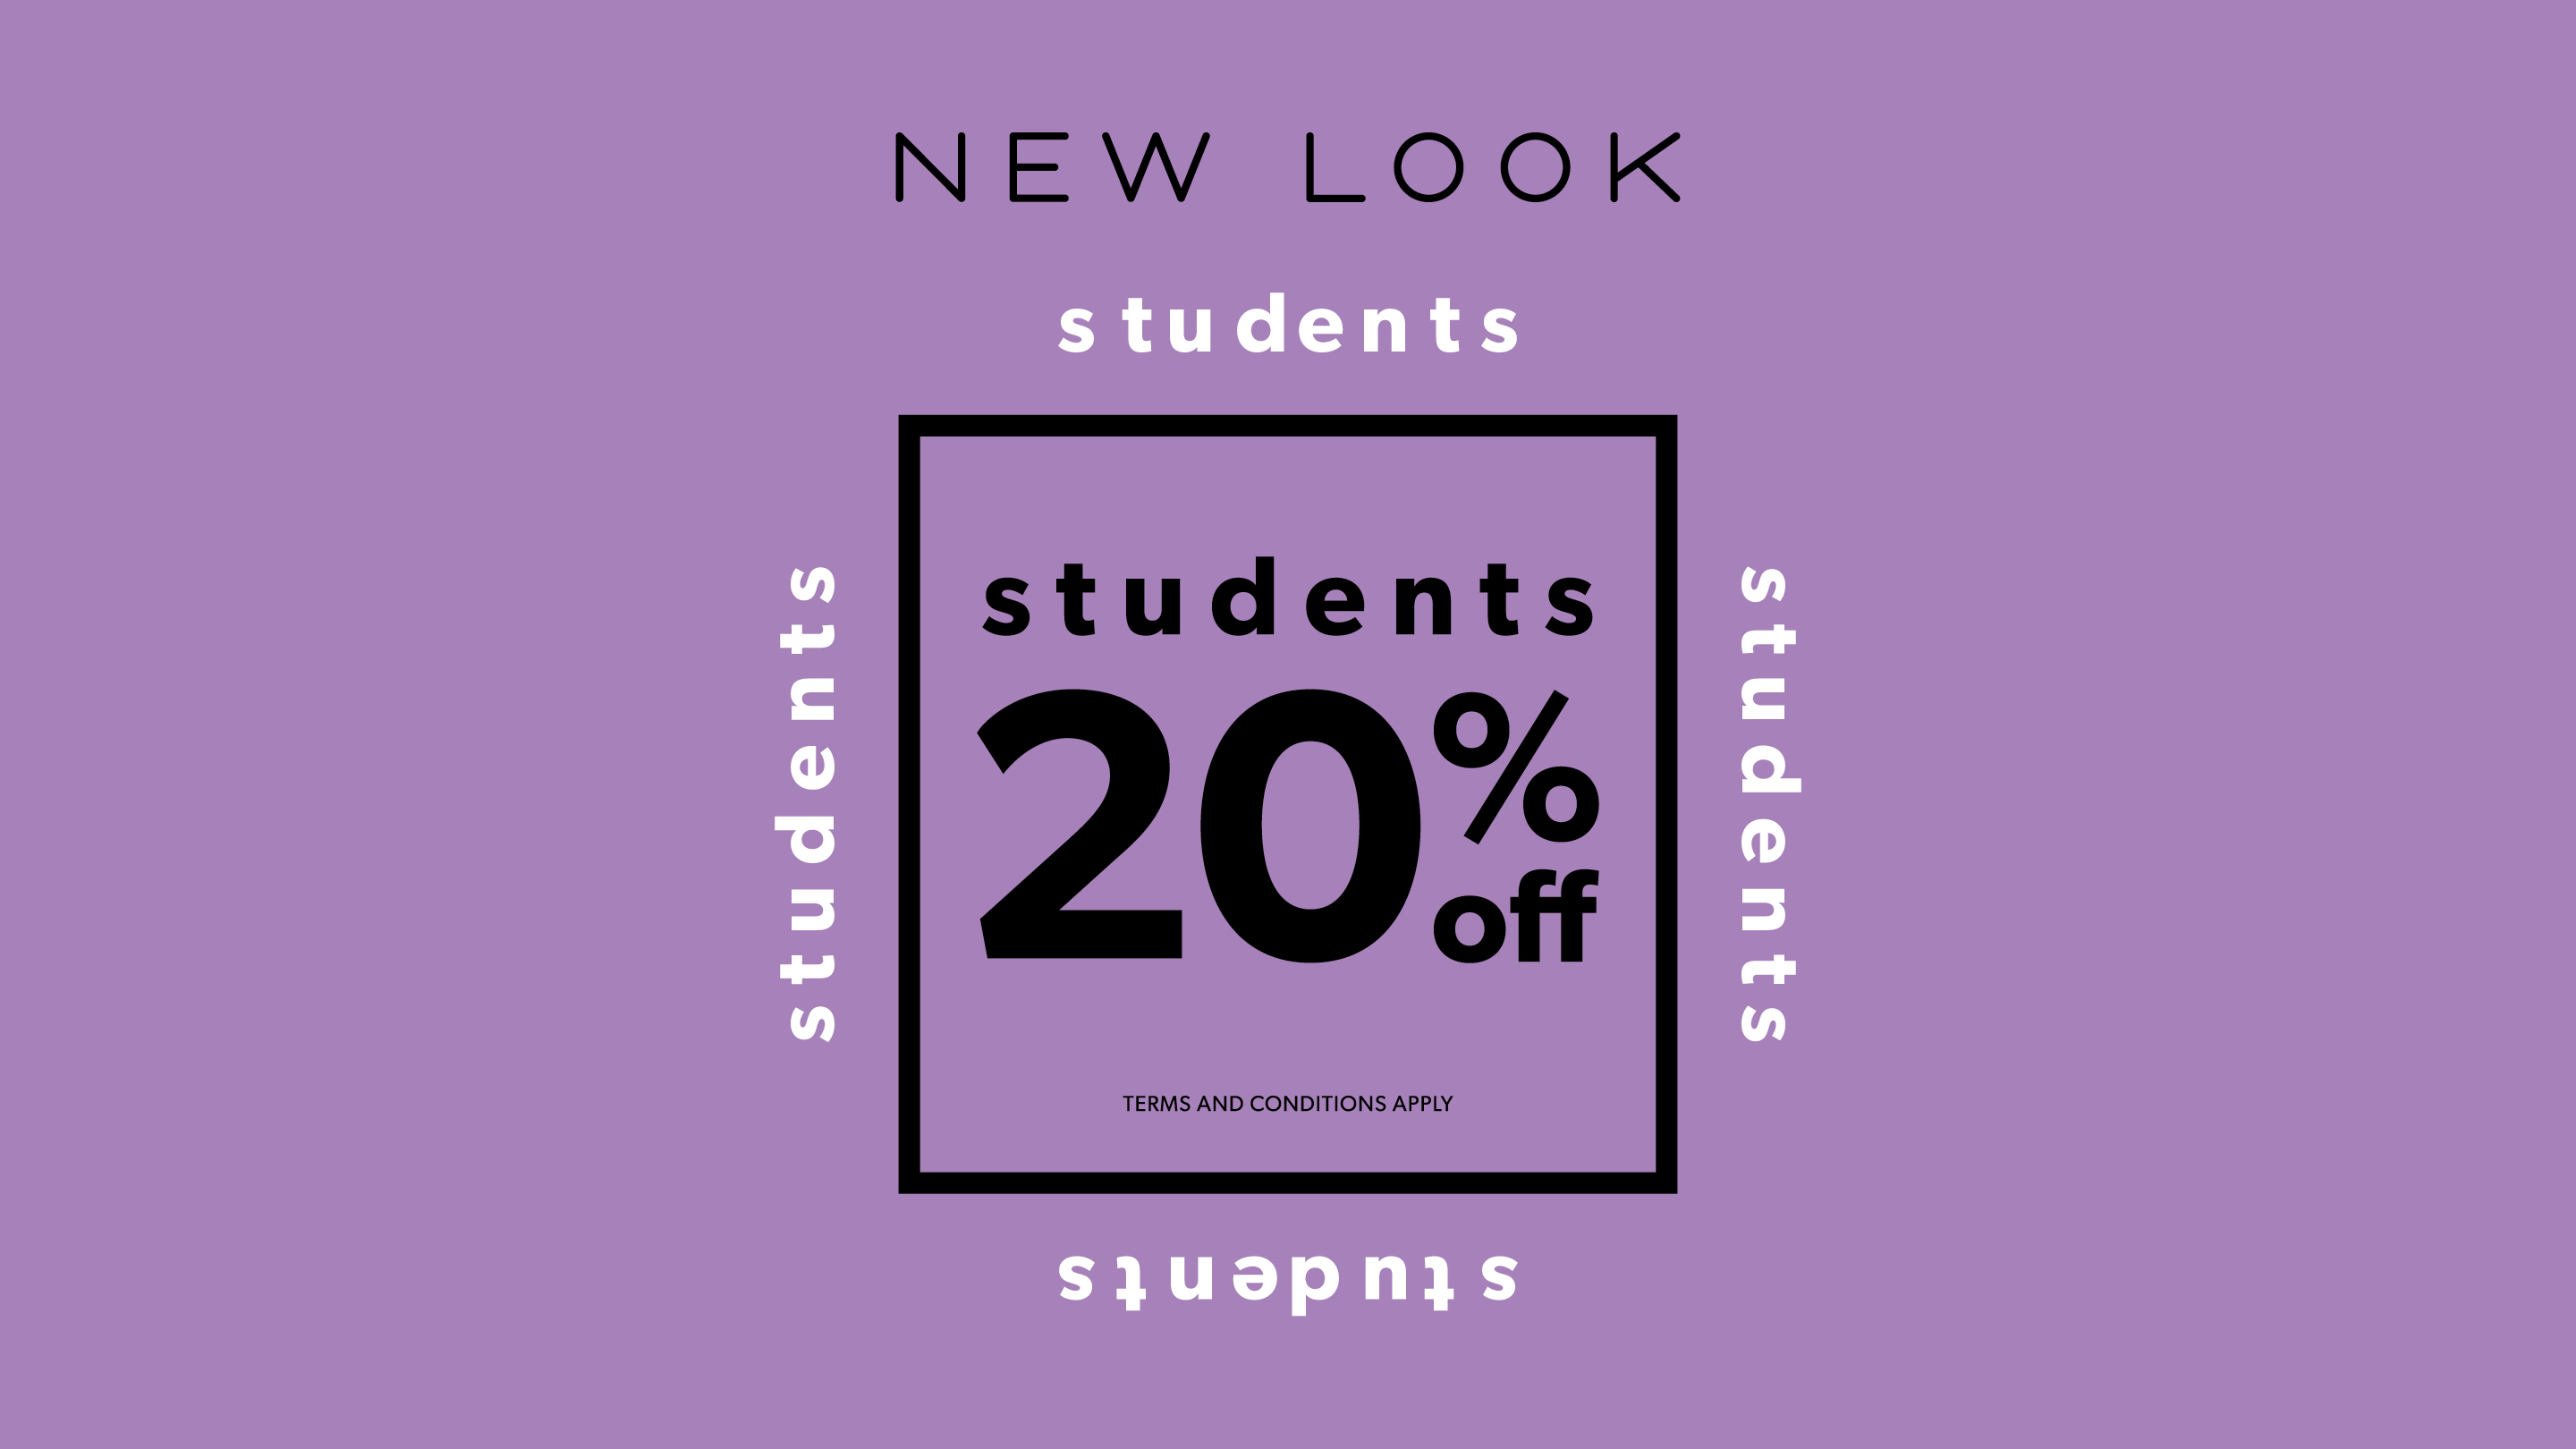 Woo - hoo! The lovely people at New Look have created a unique discount from to share with you that enables you to get 20% off online and in store! The code is MICHELLE20 and it's valid from Thursday 30th August through to Monday 3rd September.